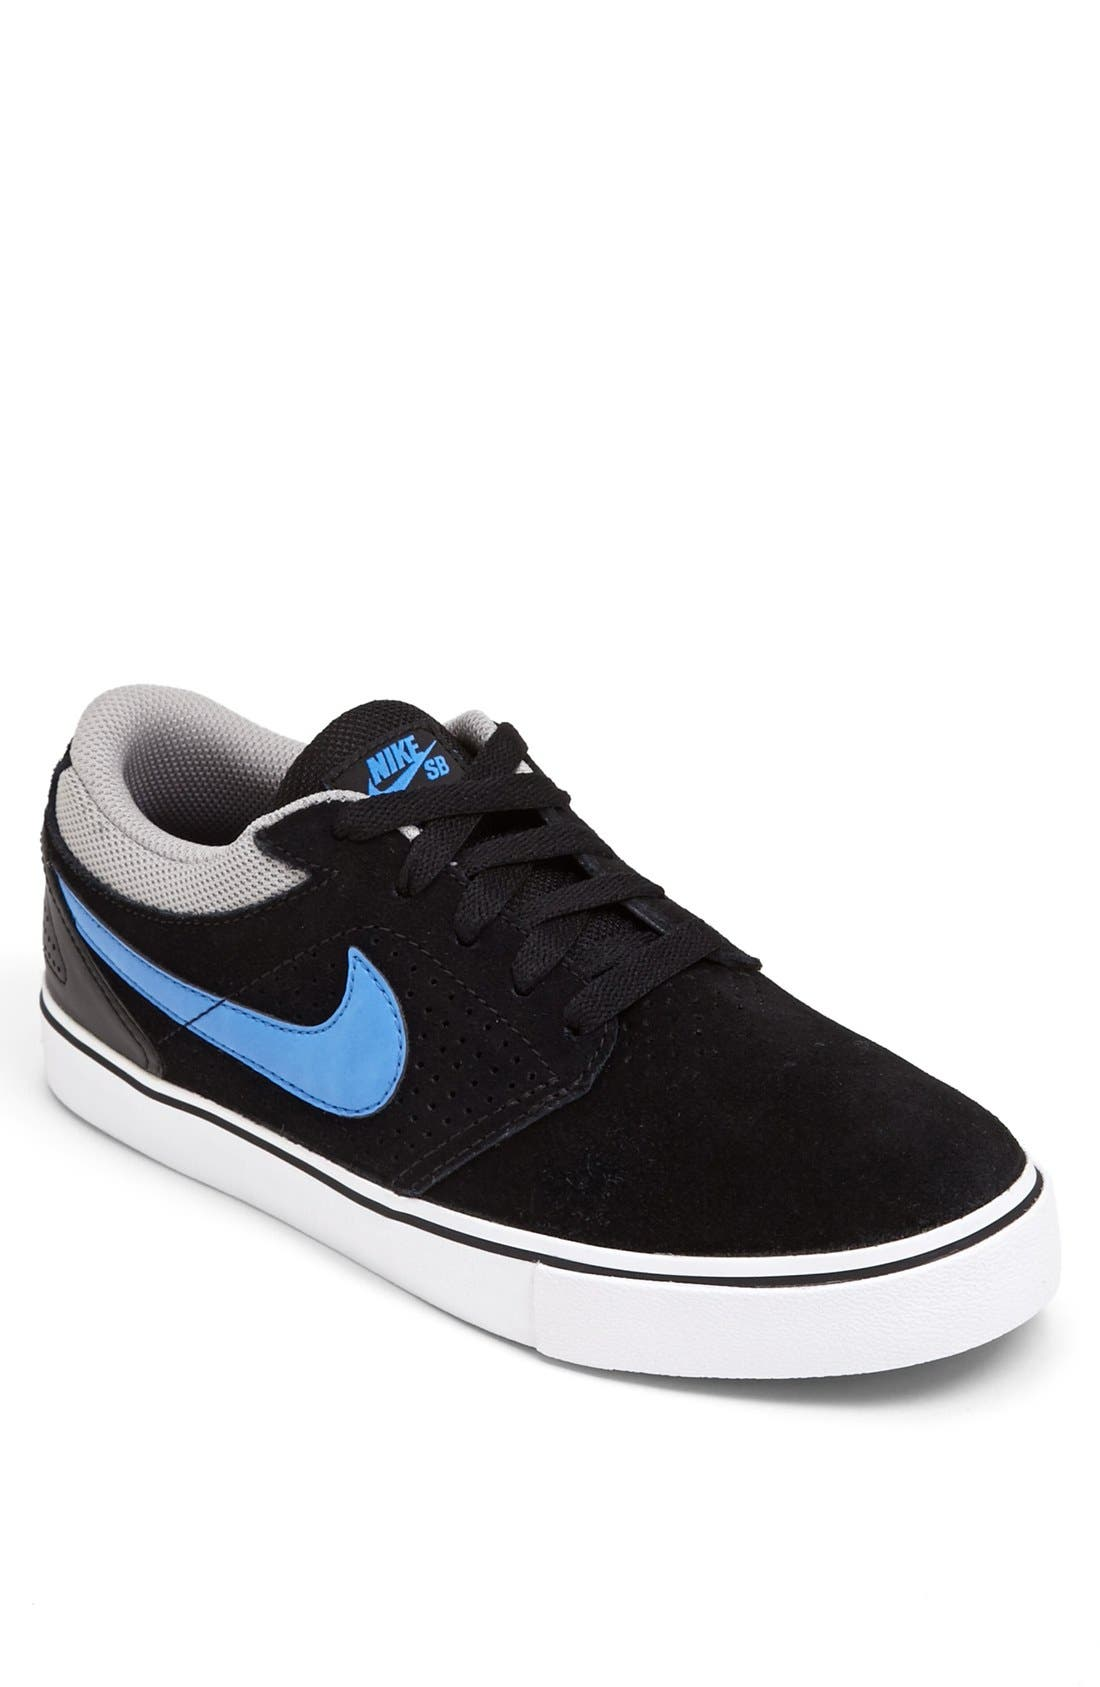 Alternate Image 1 Selected - Nike 'Paul Rodriguez 5 LR' Sneaker (Men)